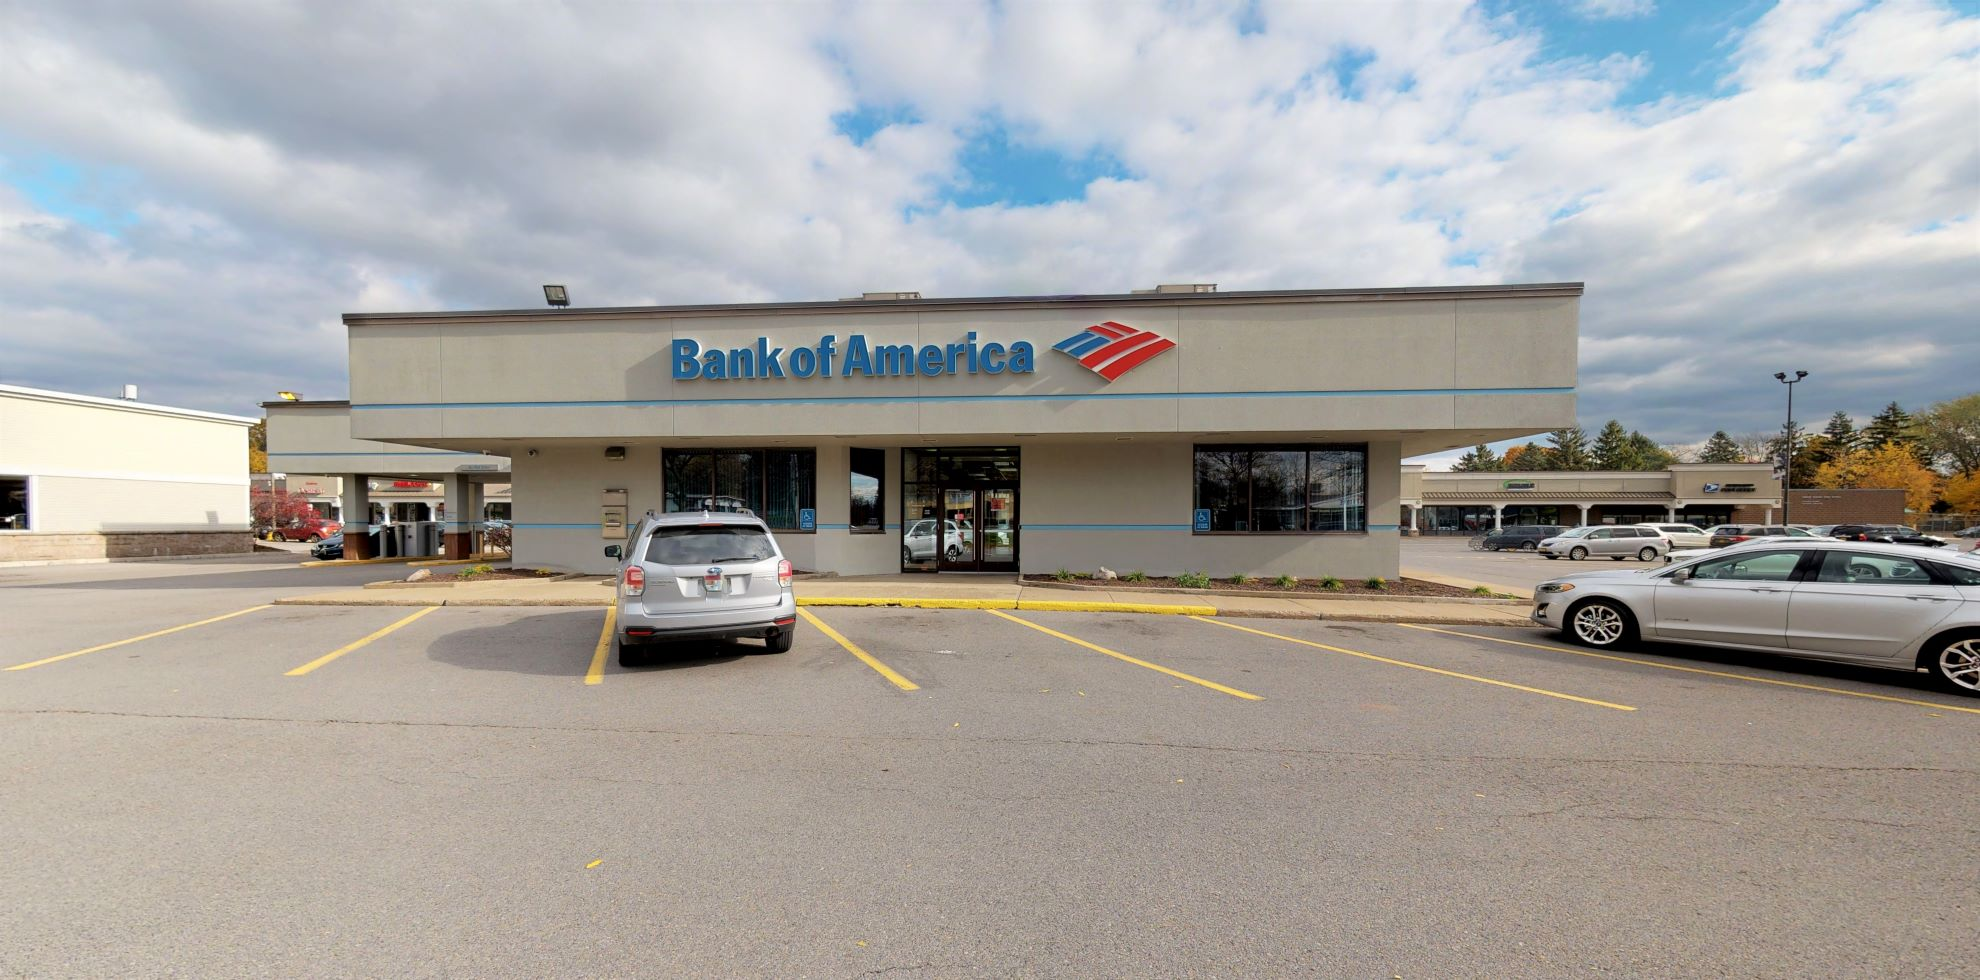 Bank of America financial center with drive-thru ATM and teller   7610 Oswego Rd, Liverpool, NY 13090